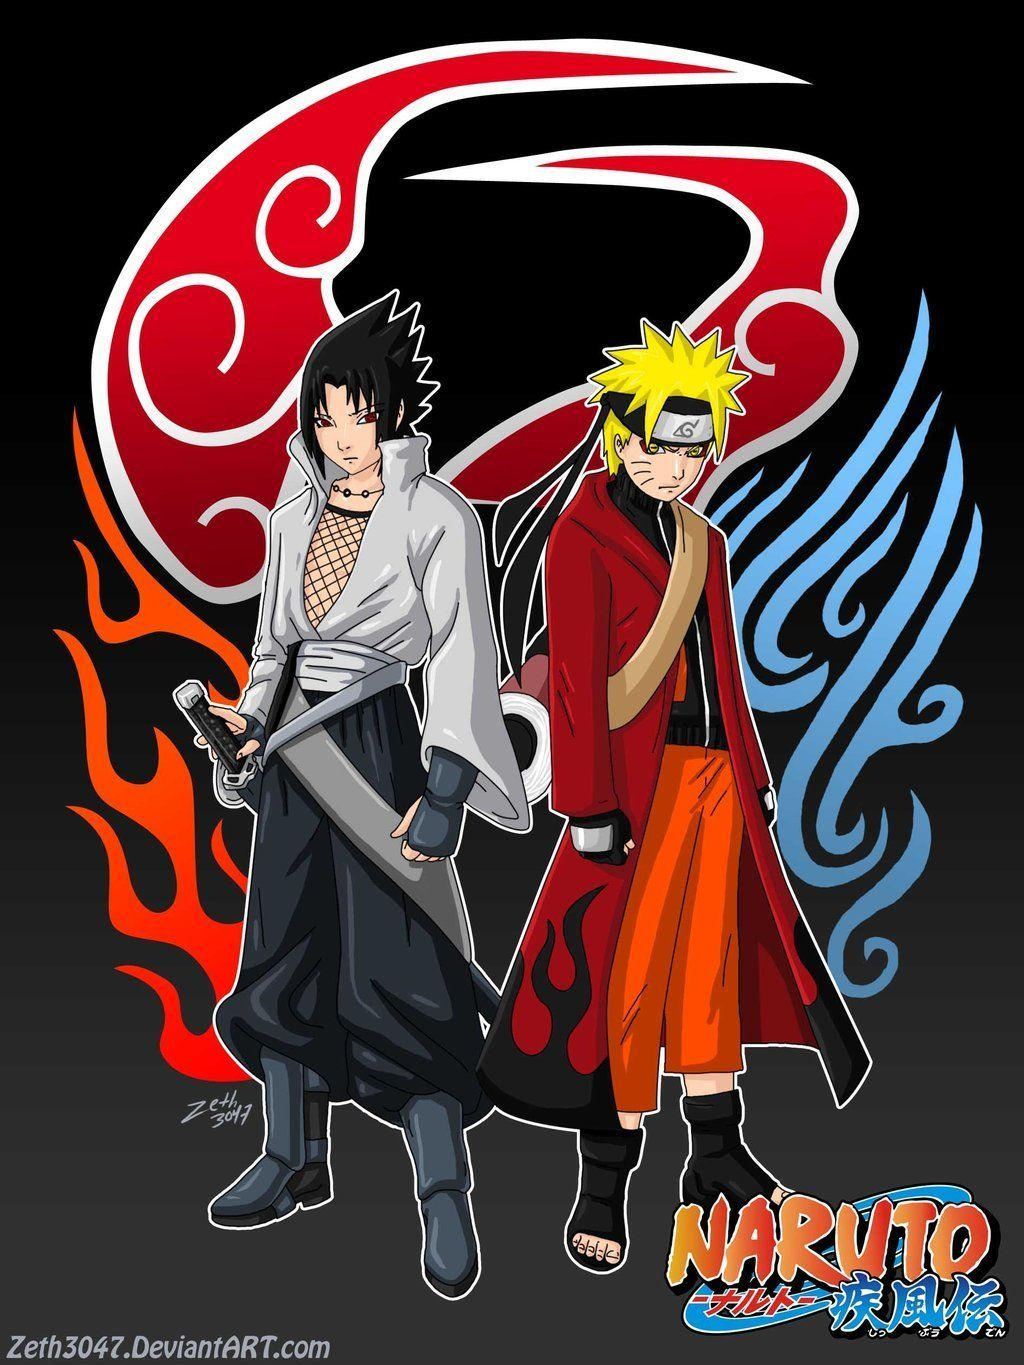 Naruto Wallpapers Naruto Vs Sasuke Fanart By Zoppine On Fandom Anime Wallpaper Kartun Logo Keren Seni